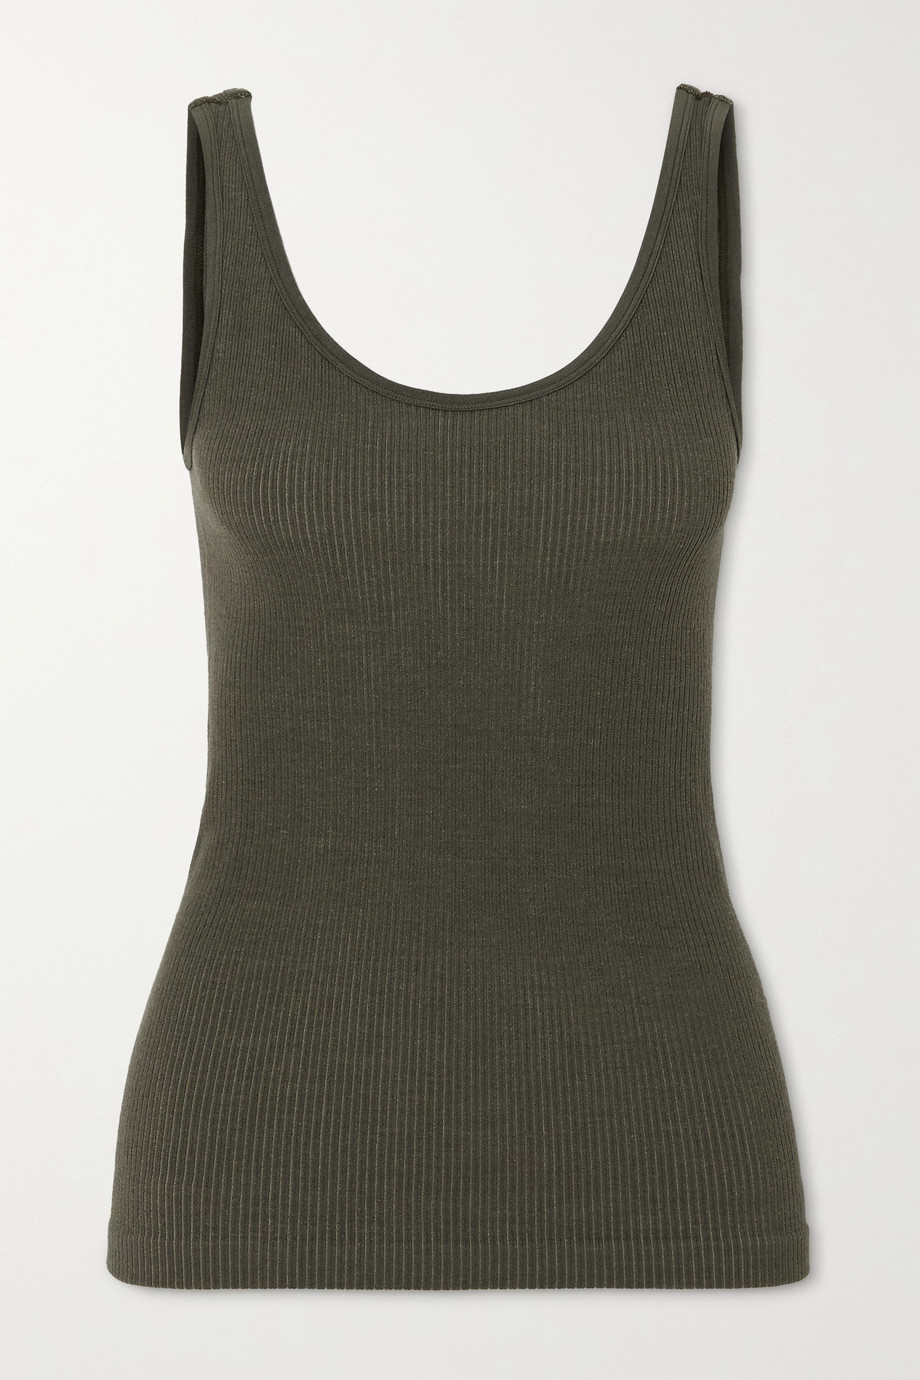 NAGNATA + Space for Giants Avika ribbed technical stretch-knit tank